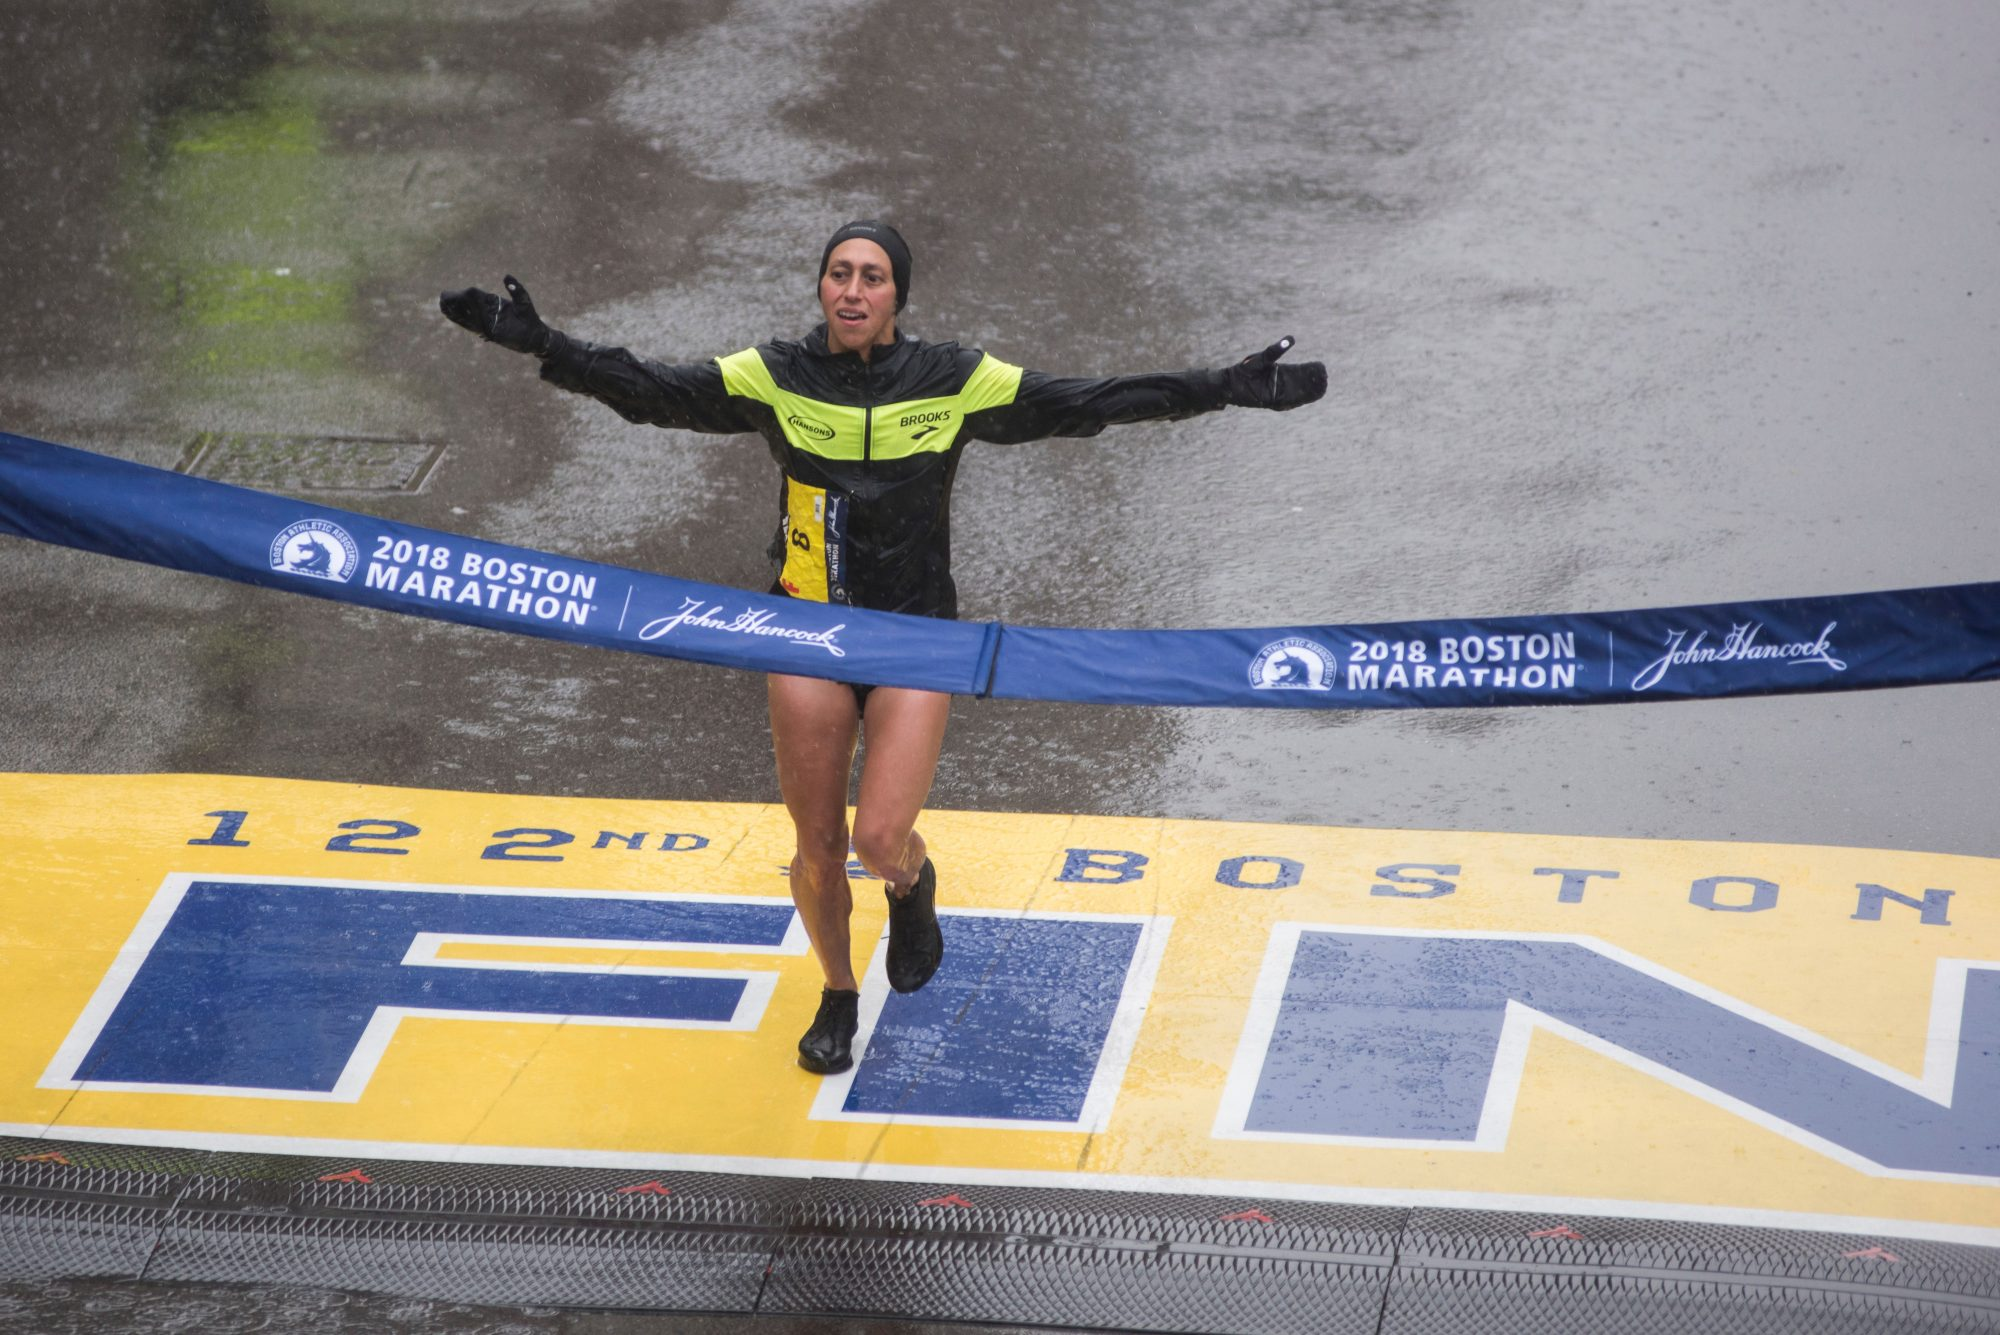 Desiree Linden of the United States crosses the finish line as the winner of the 2018 and 122nd Boston Marathon for Elite Women's race